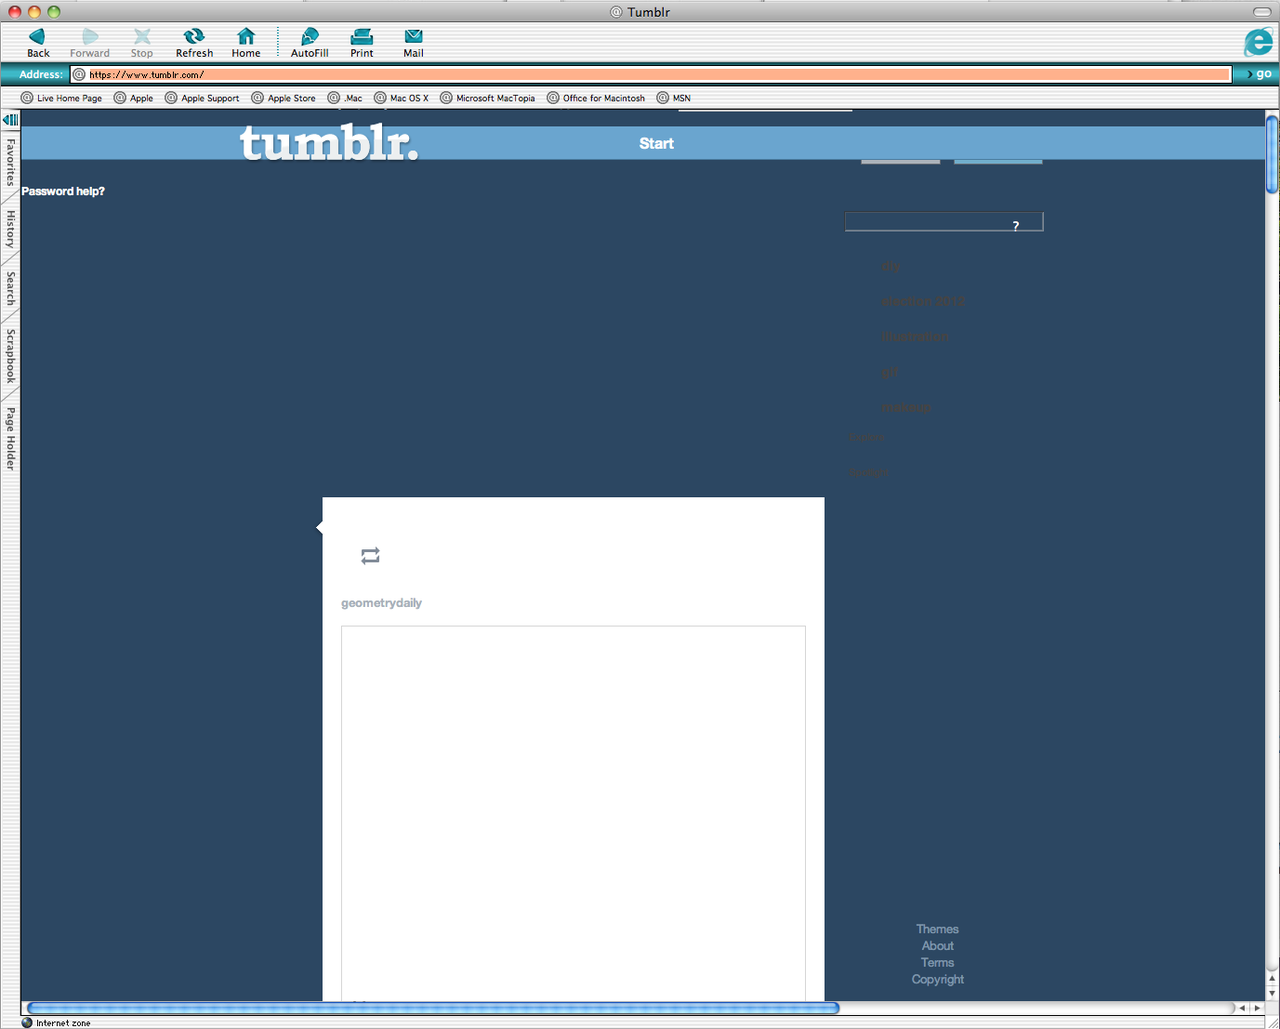 What tumblr looks like in IE 5.2!!